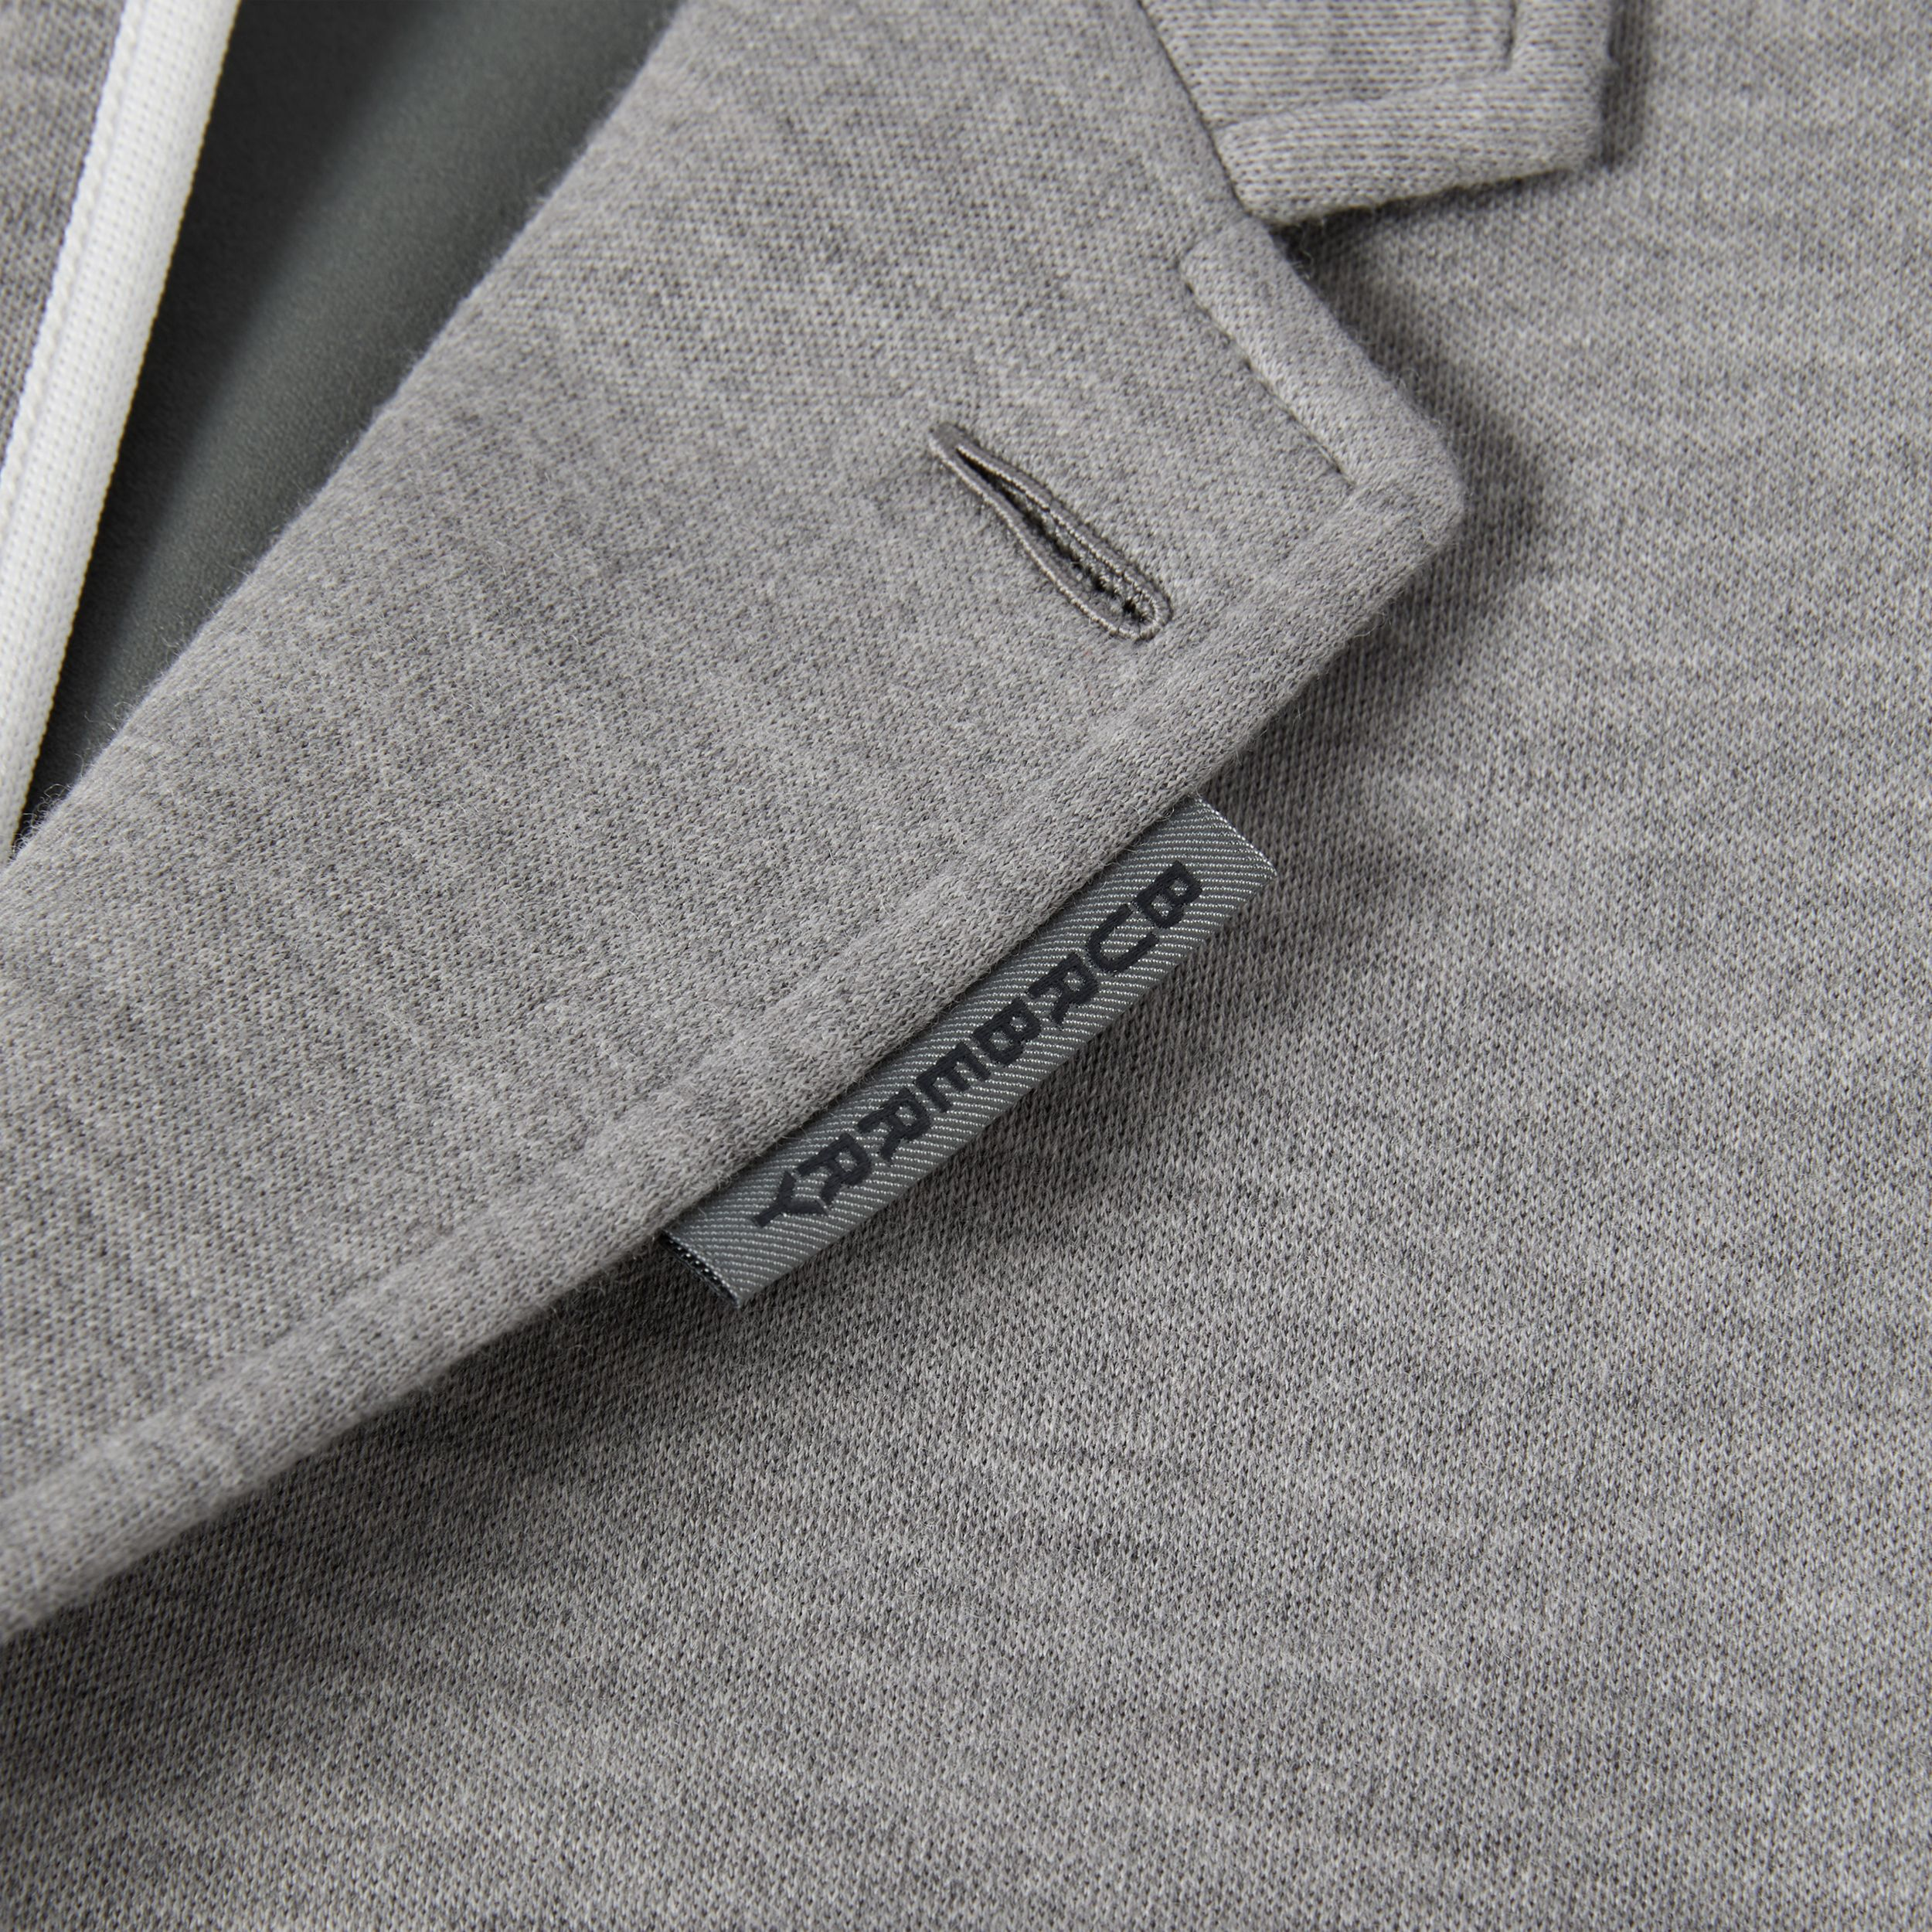 Relaxed Fit Wool Jersey Tailored Jacket in Cloud Grey - Men | Burberry - 4